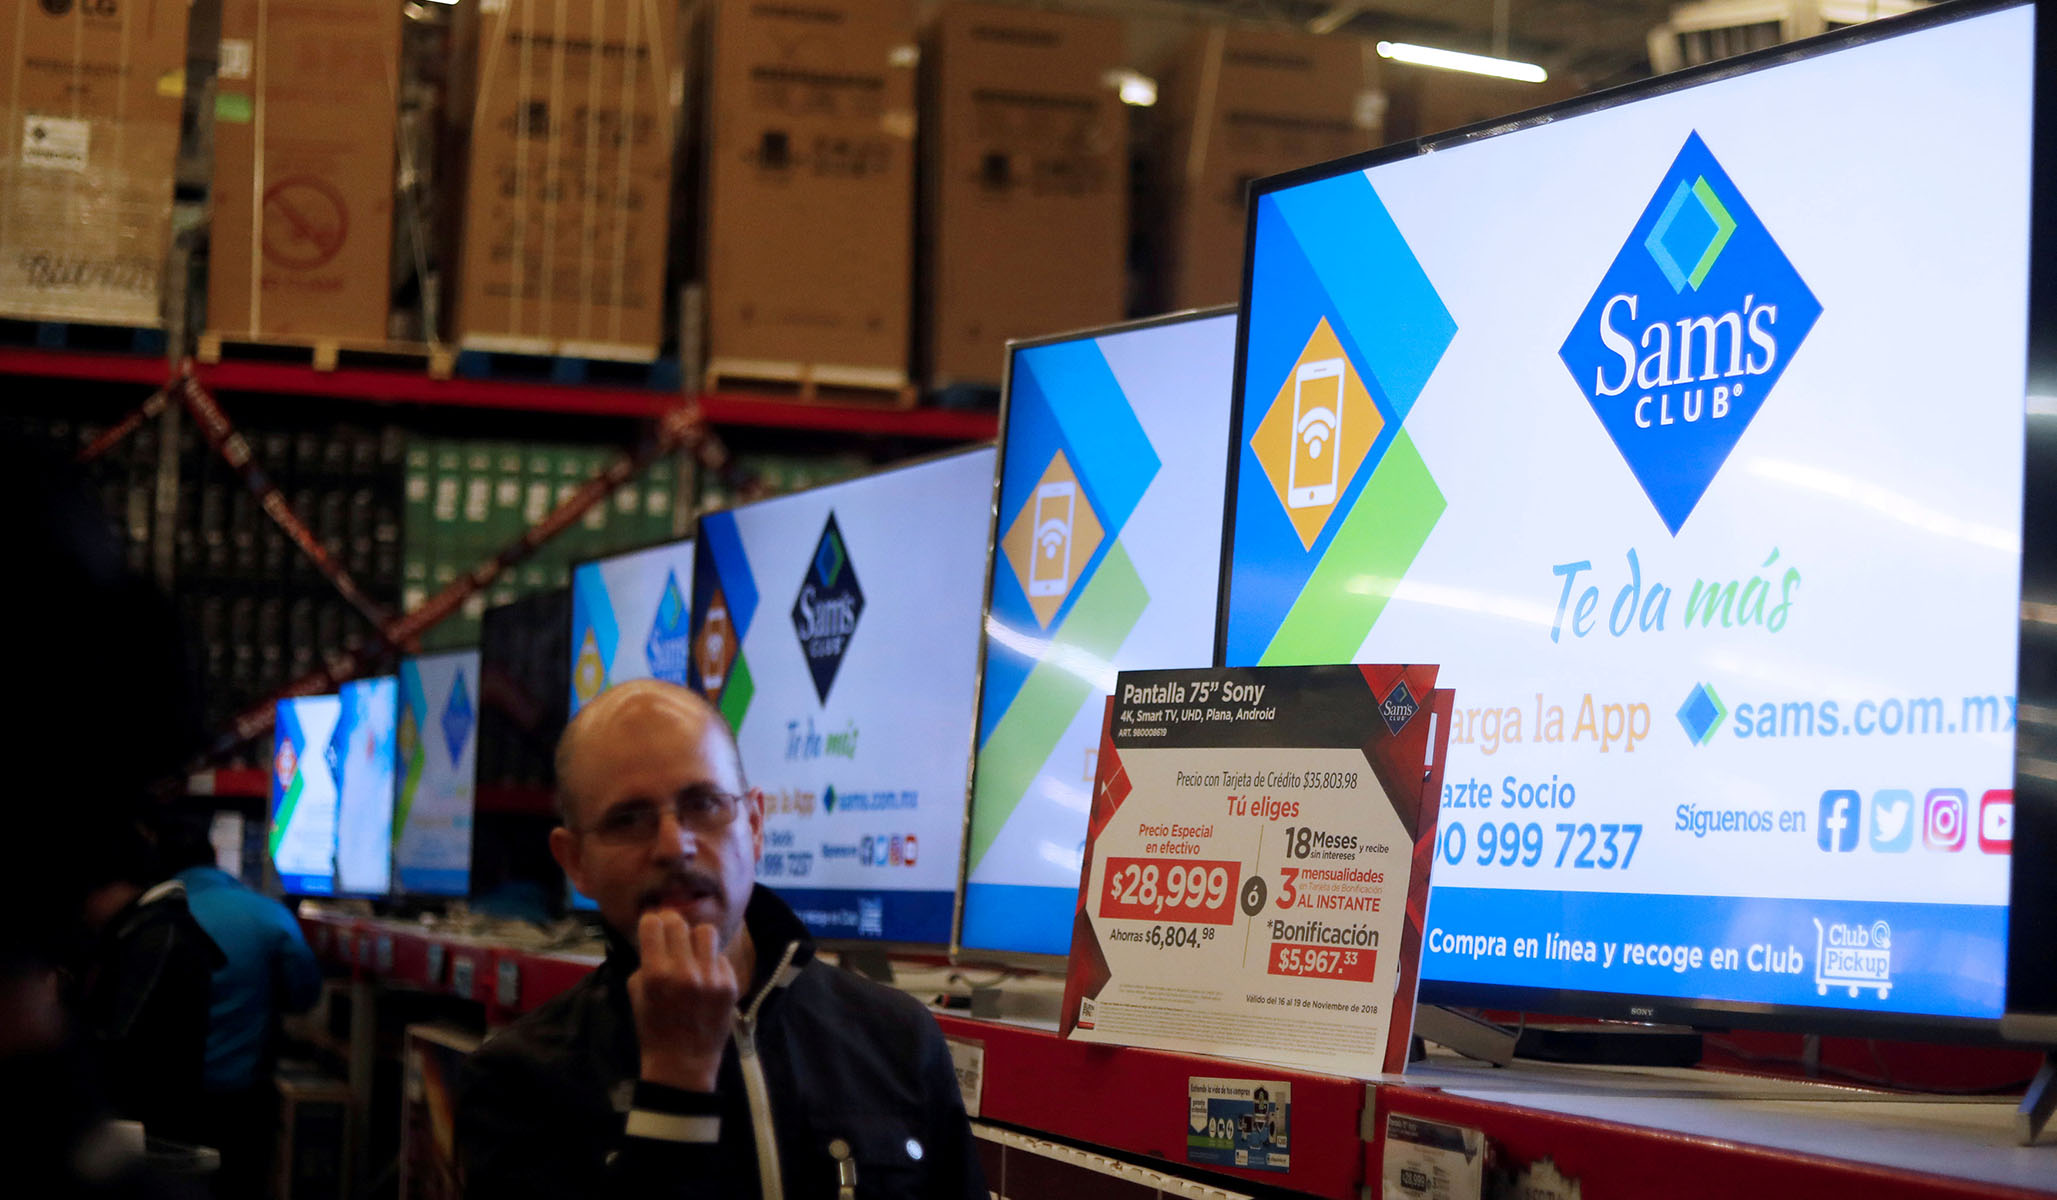 FBI Warns Smart TVs Could Be Spying on Users